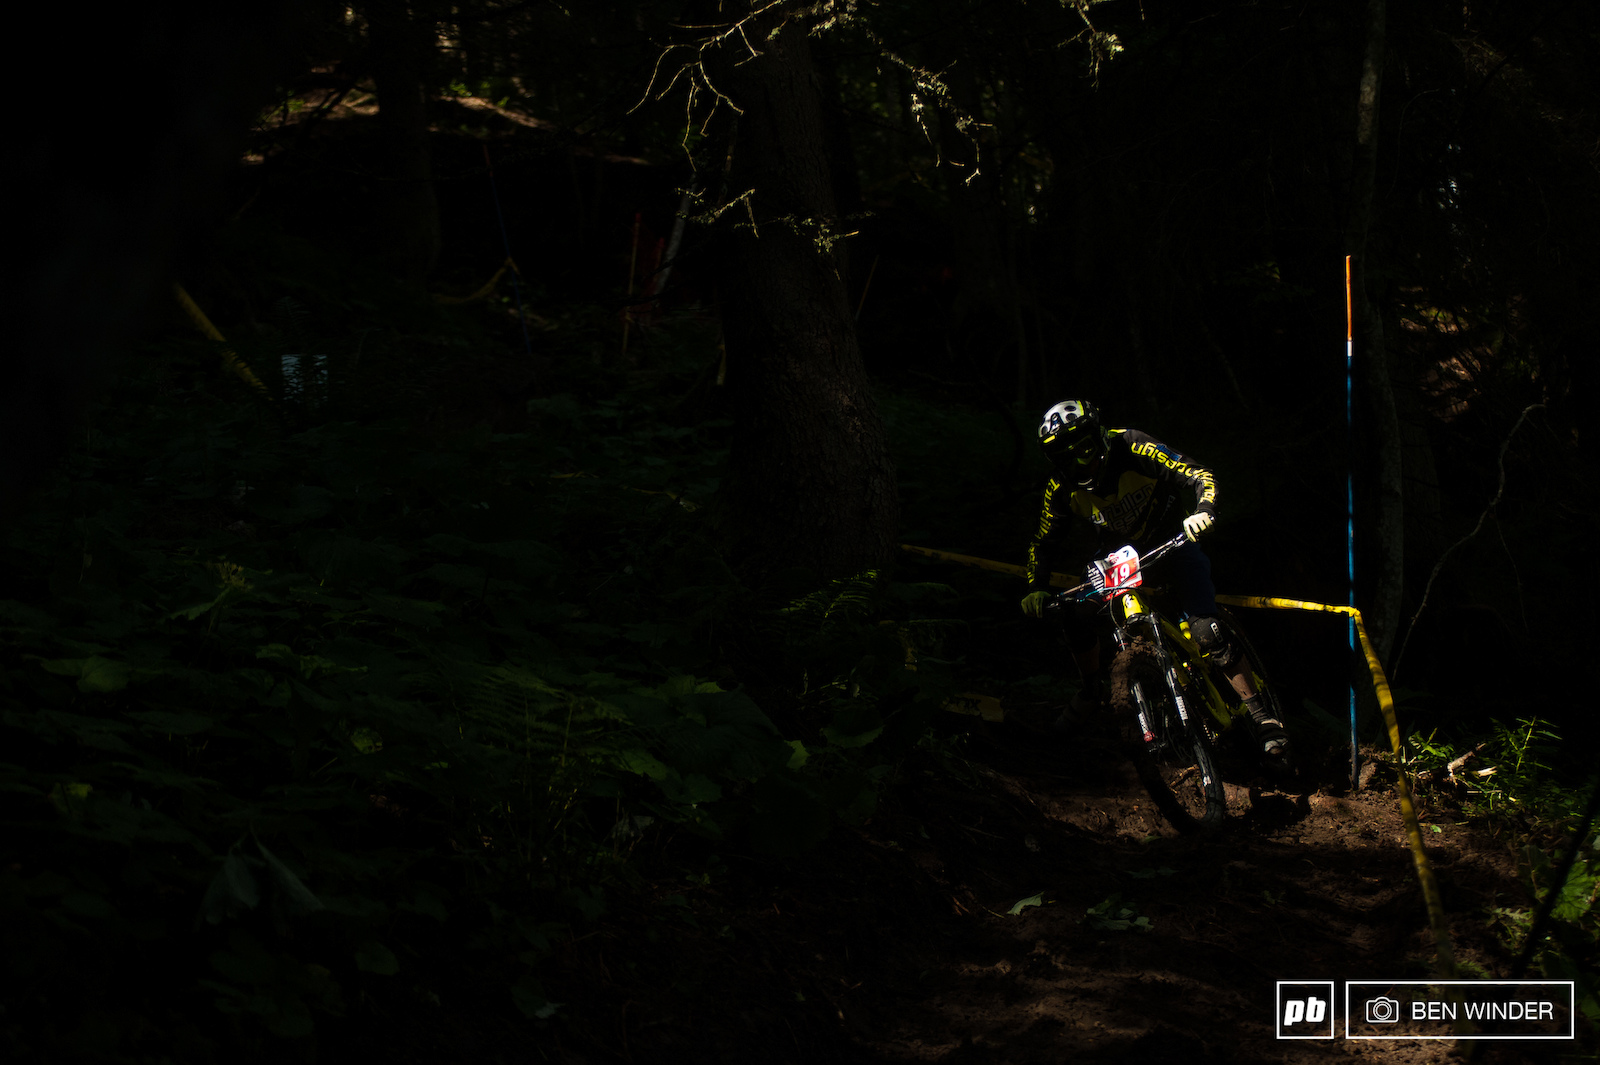 Pockets of light through the trees creating dappled light which hid many roots from riders.